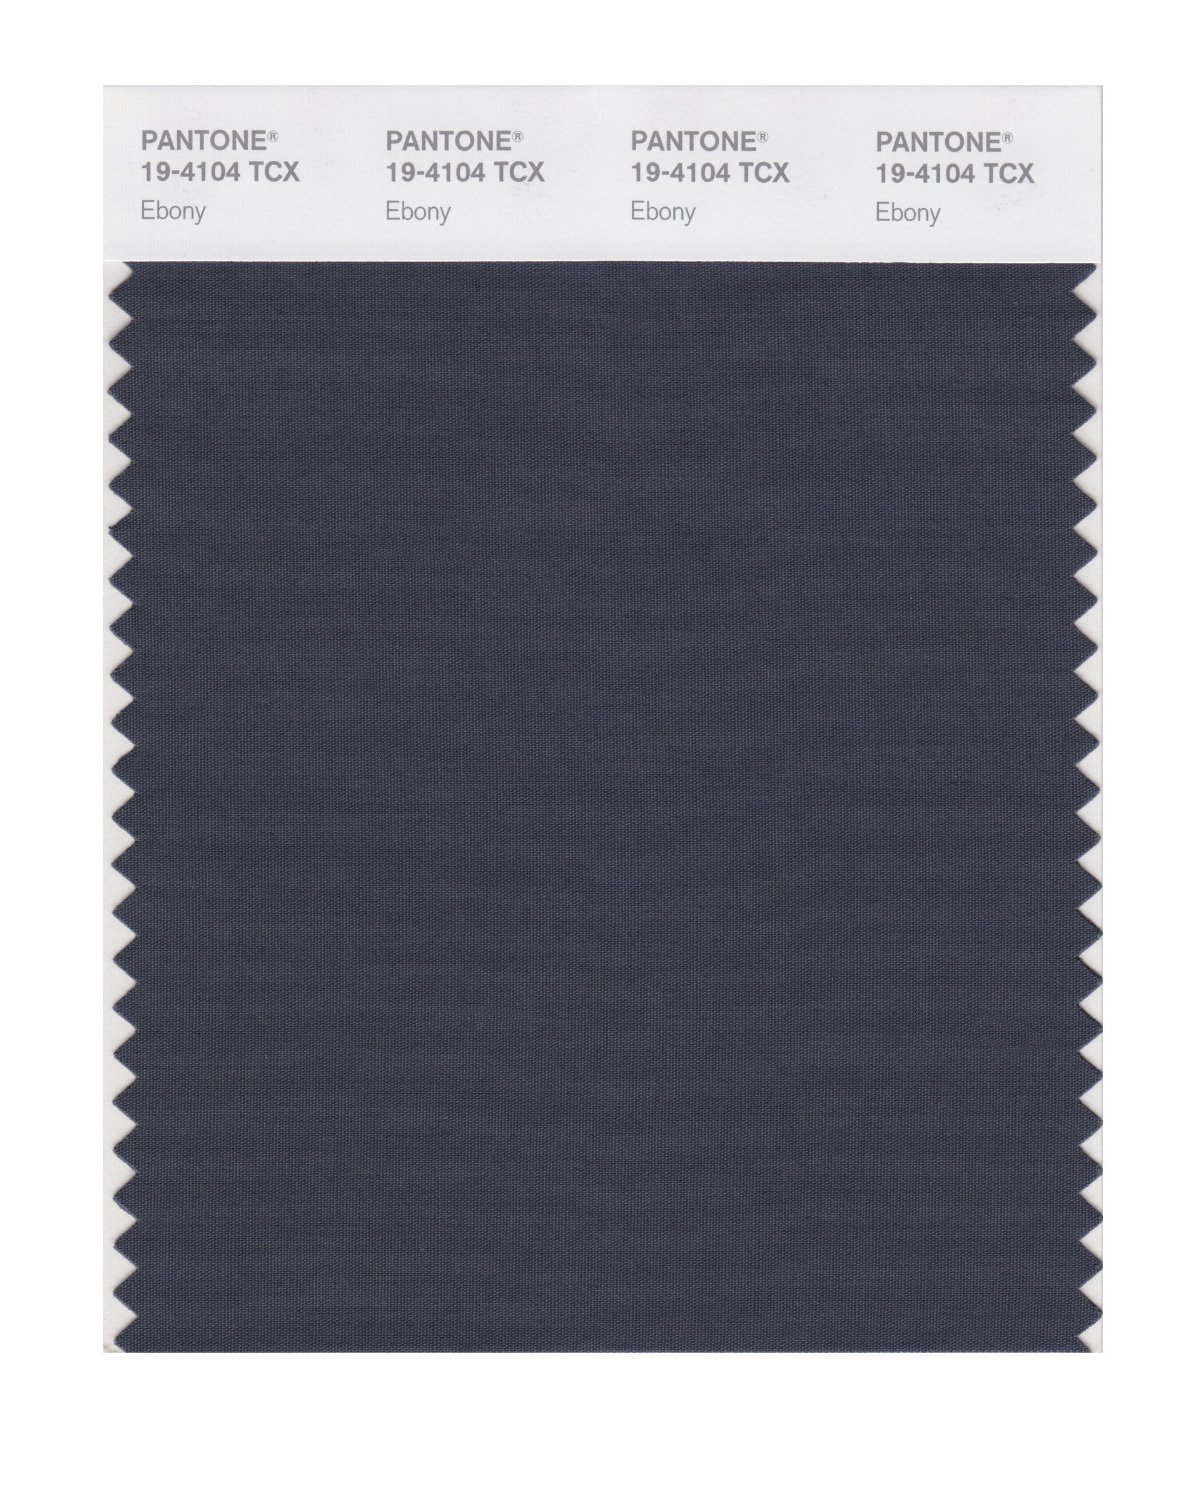 Pantone Smart Swatch 19-4104 Ebony